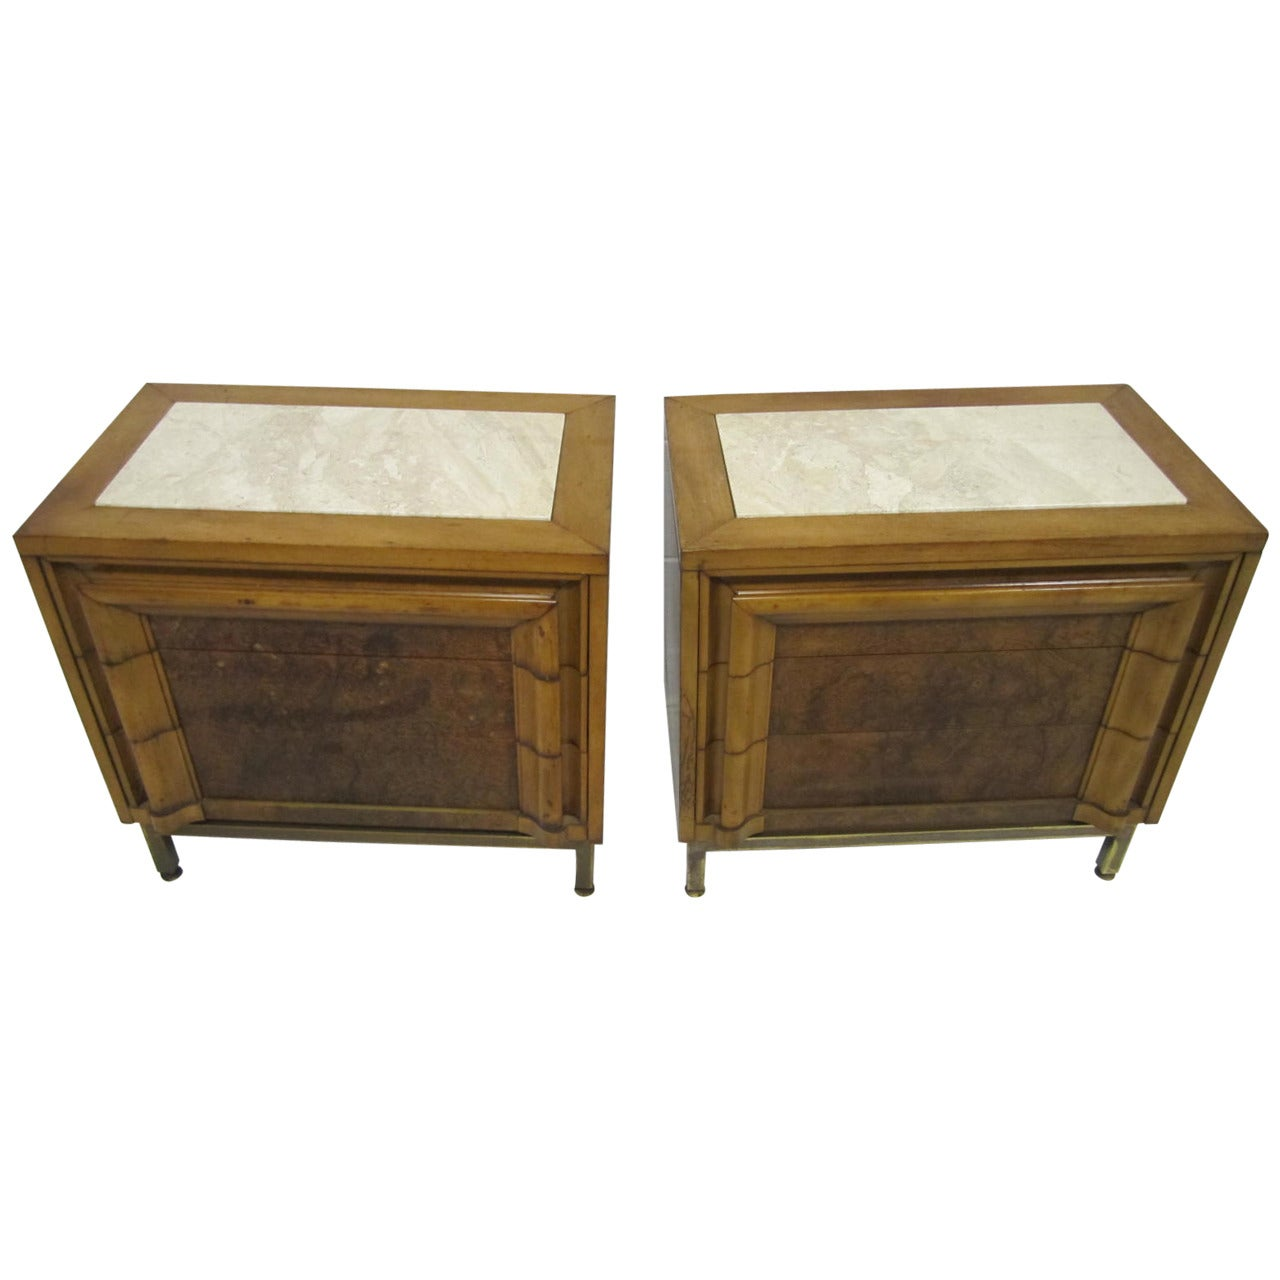 Pair of Mastercraft Style Burled Walnut and Limestone Night Stands